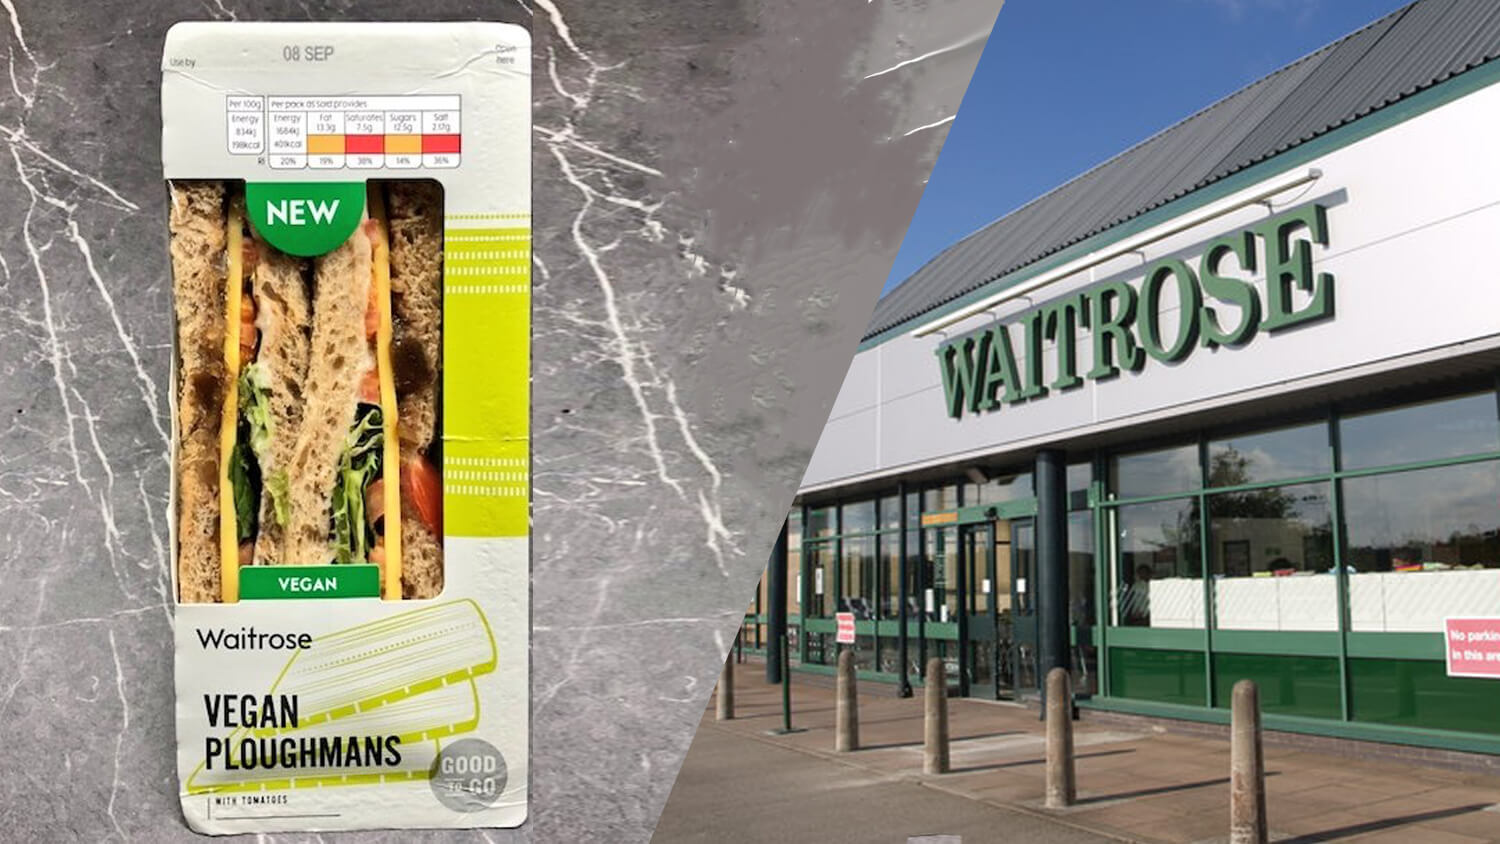 UK Supermarket Chain Waitrose Launches Vegan Ploughmans Sandwich